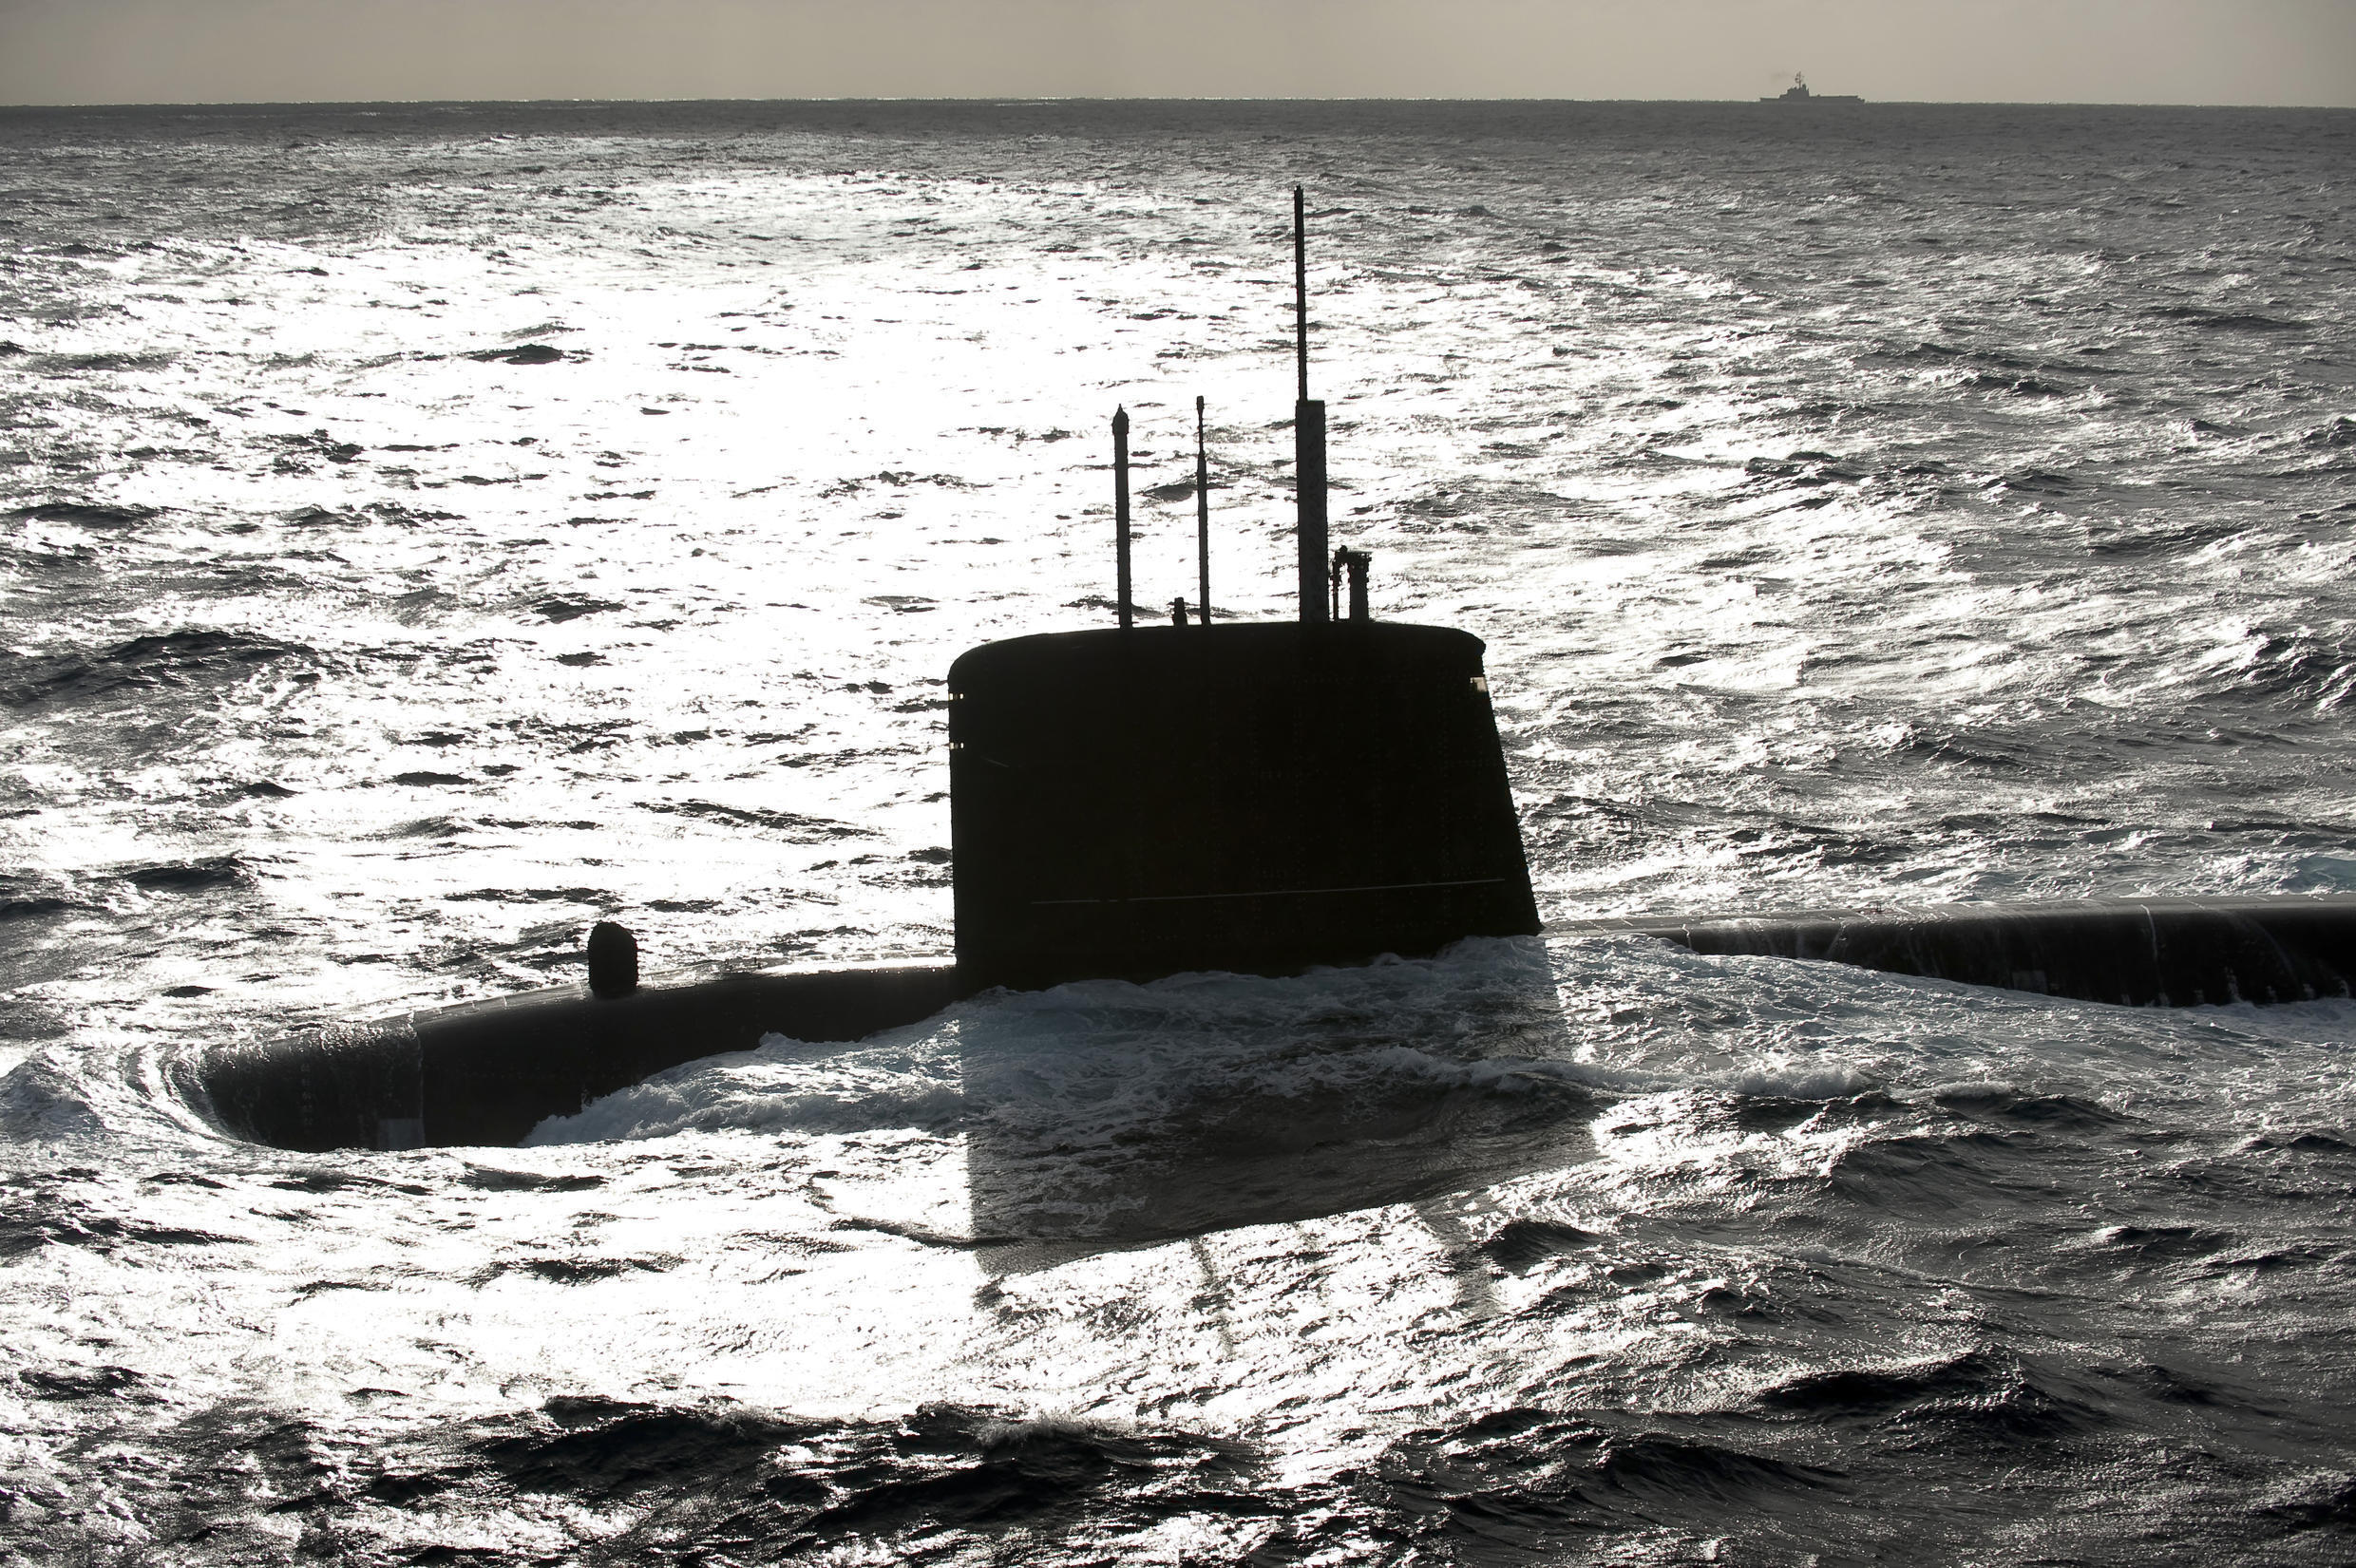 Nuclear attack submarine SNA Emeraude (shown in this file picture) was one of the two French navy ships to patrol through the South China Sea